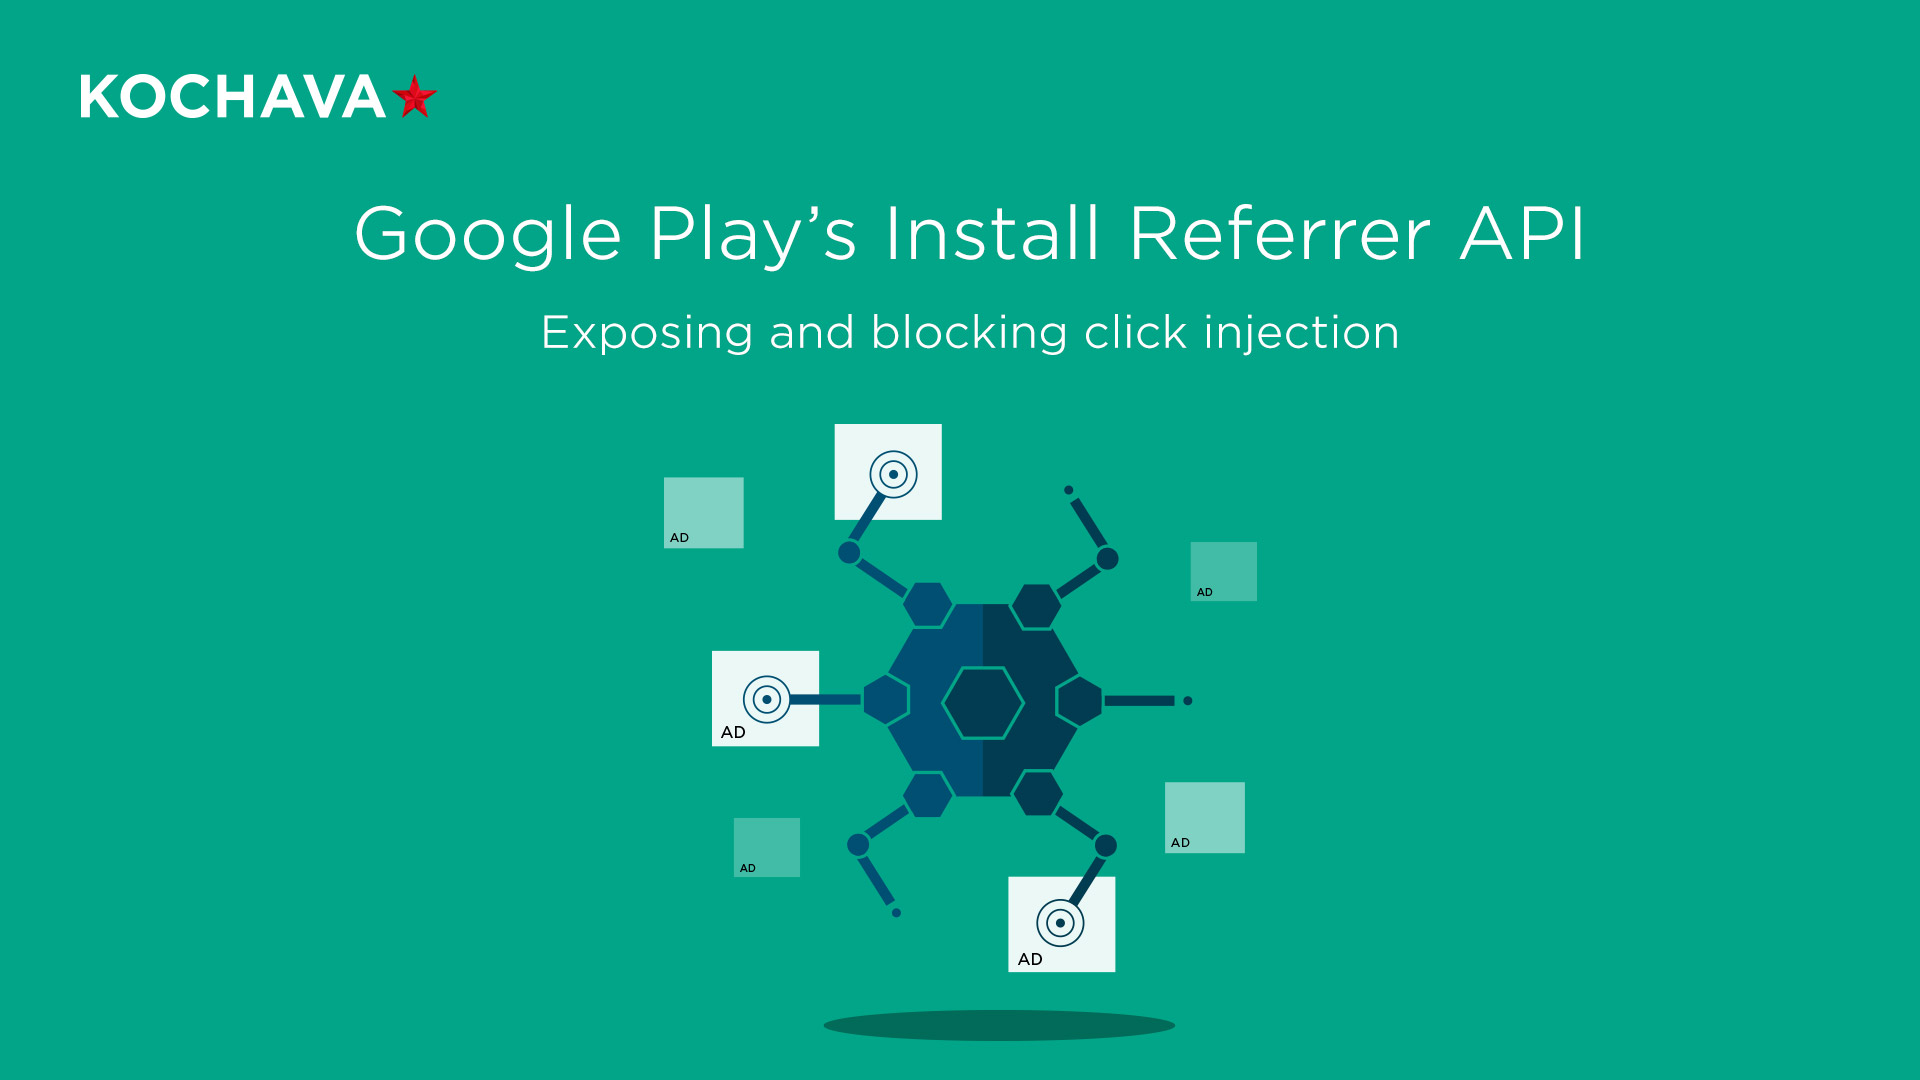 Google Play Install Referrer